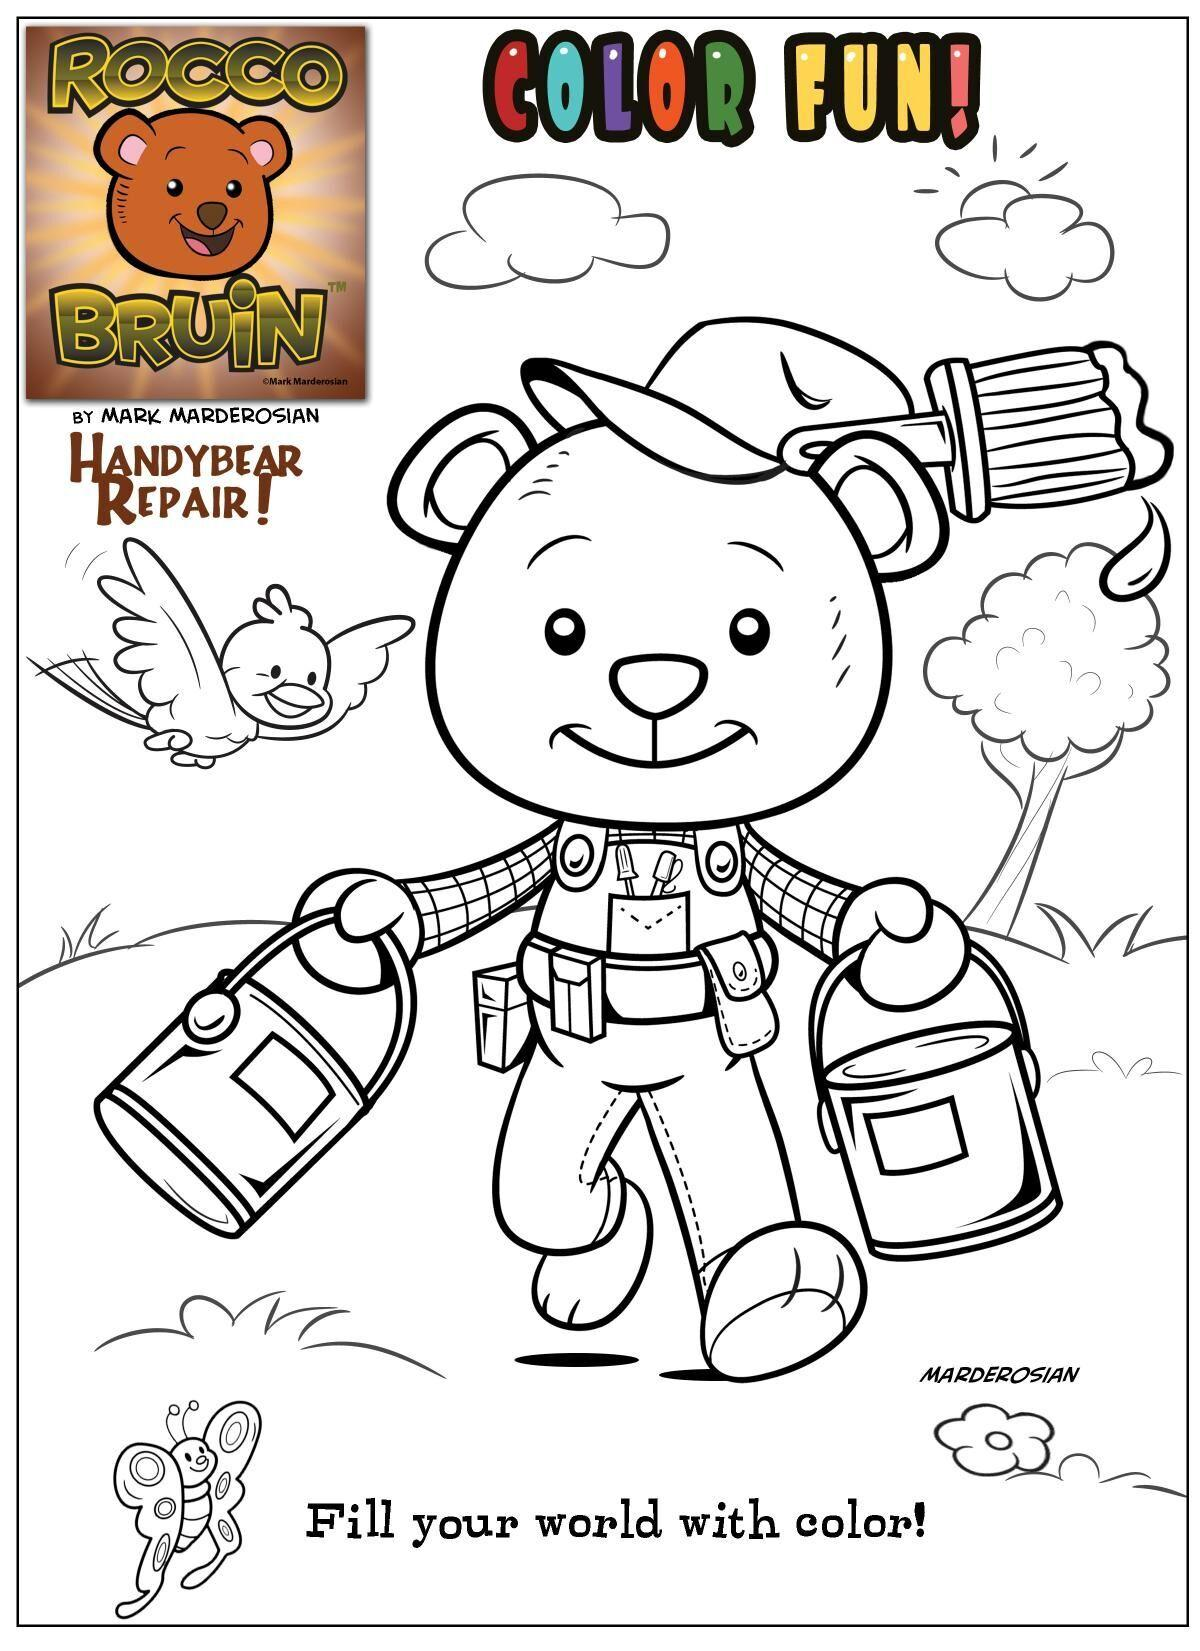 Coloring with Rocco - Handybear Repair